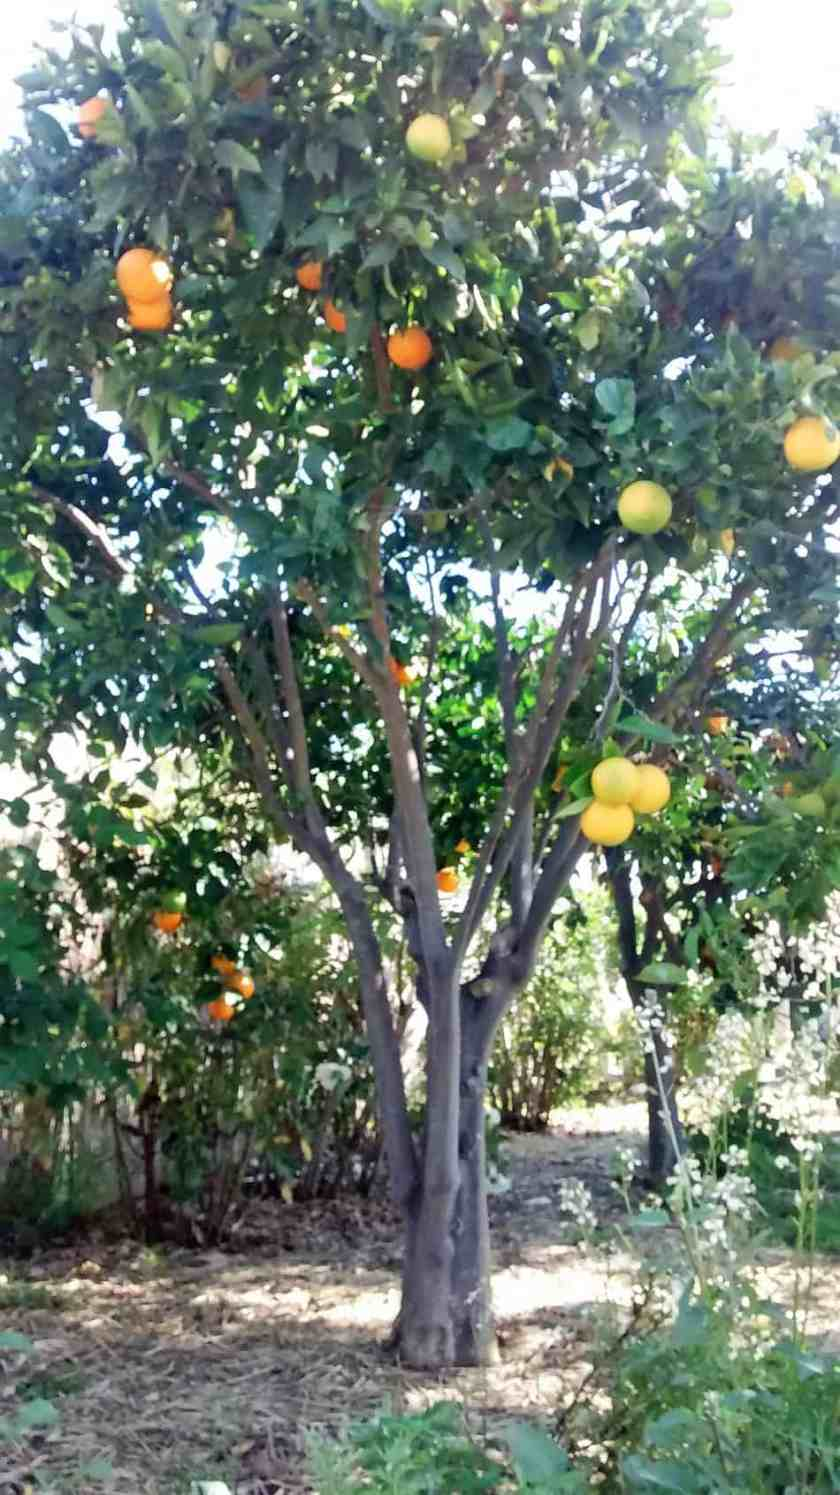 Aloha Farms food forest Valencia Orange Tree in February 2017